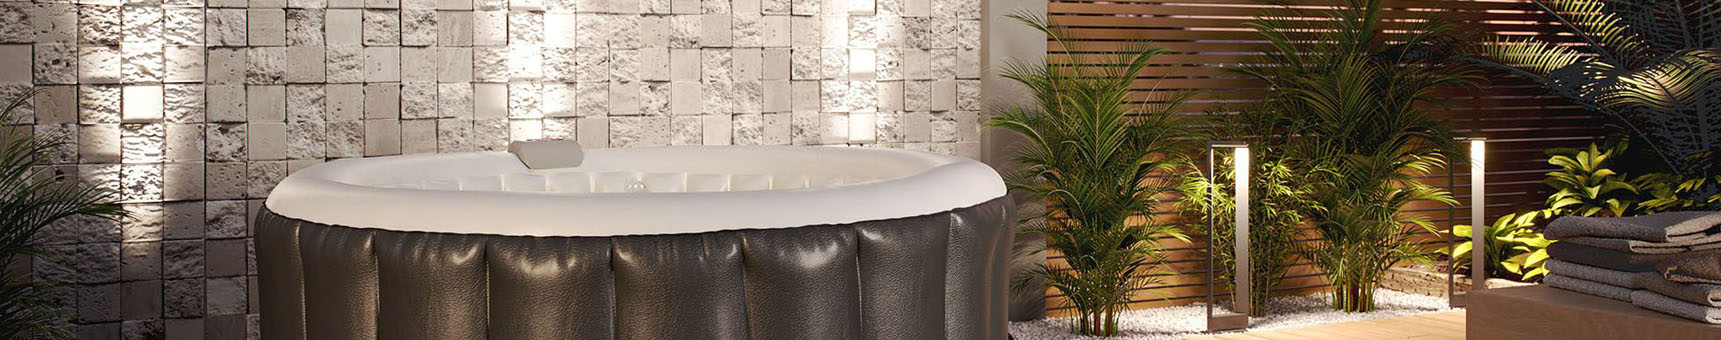 Outdoor Whirlpools - Farbe